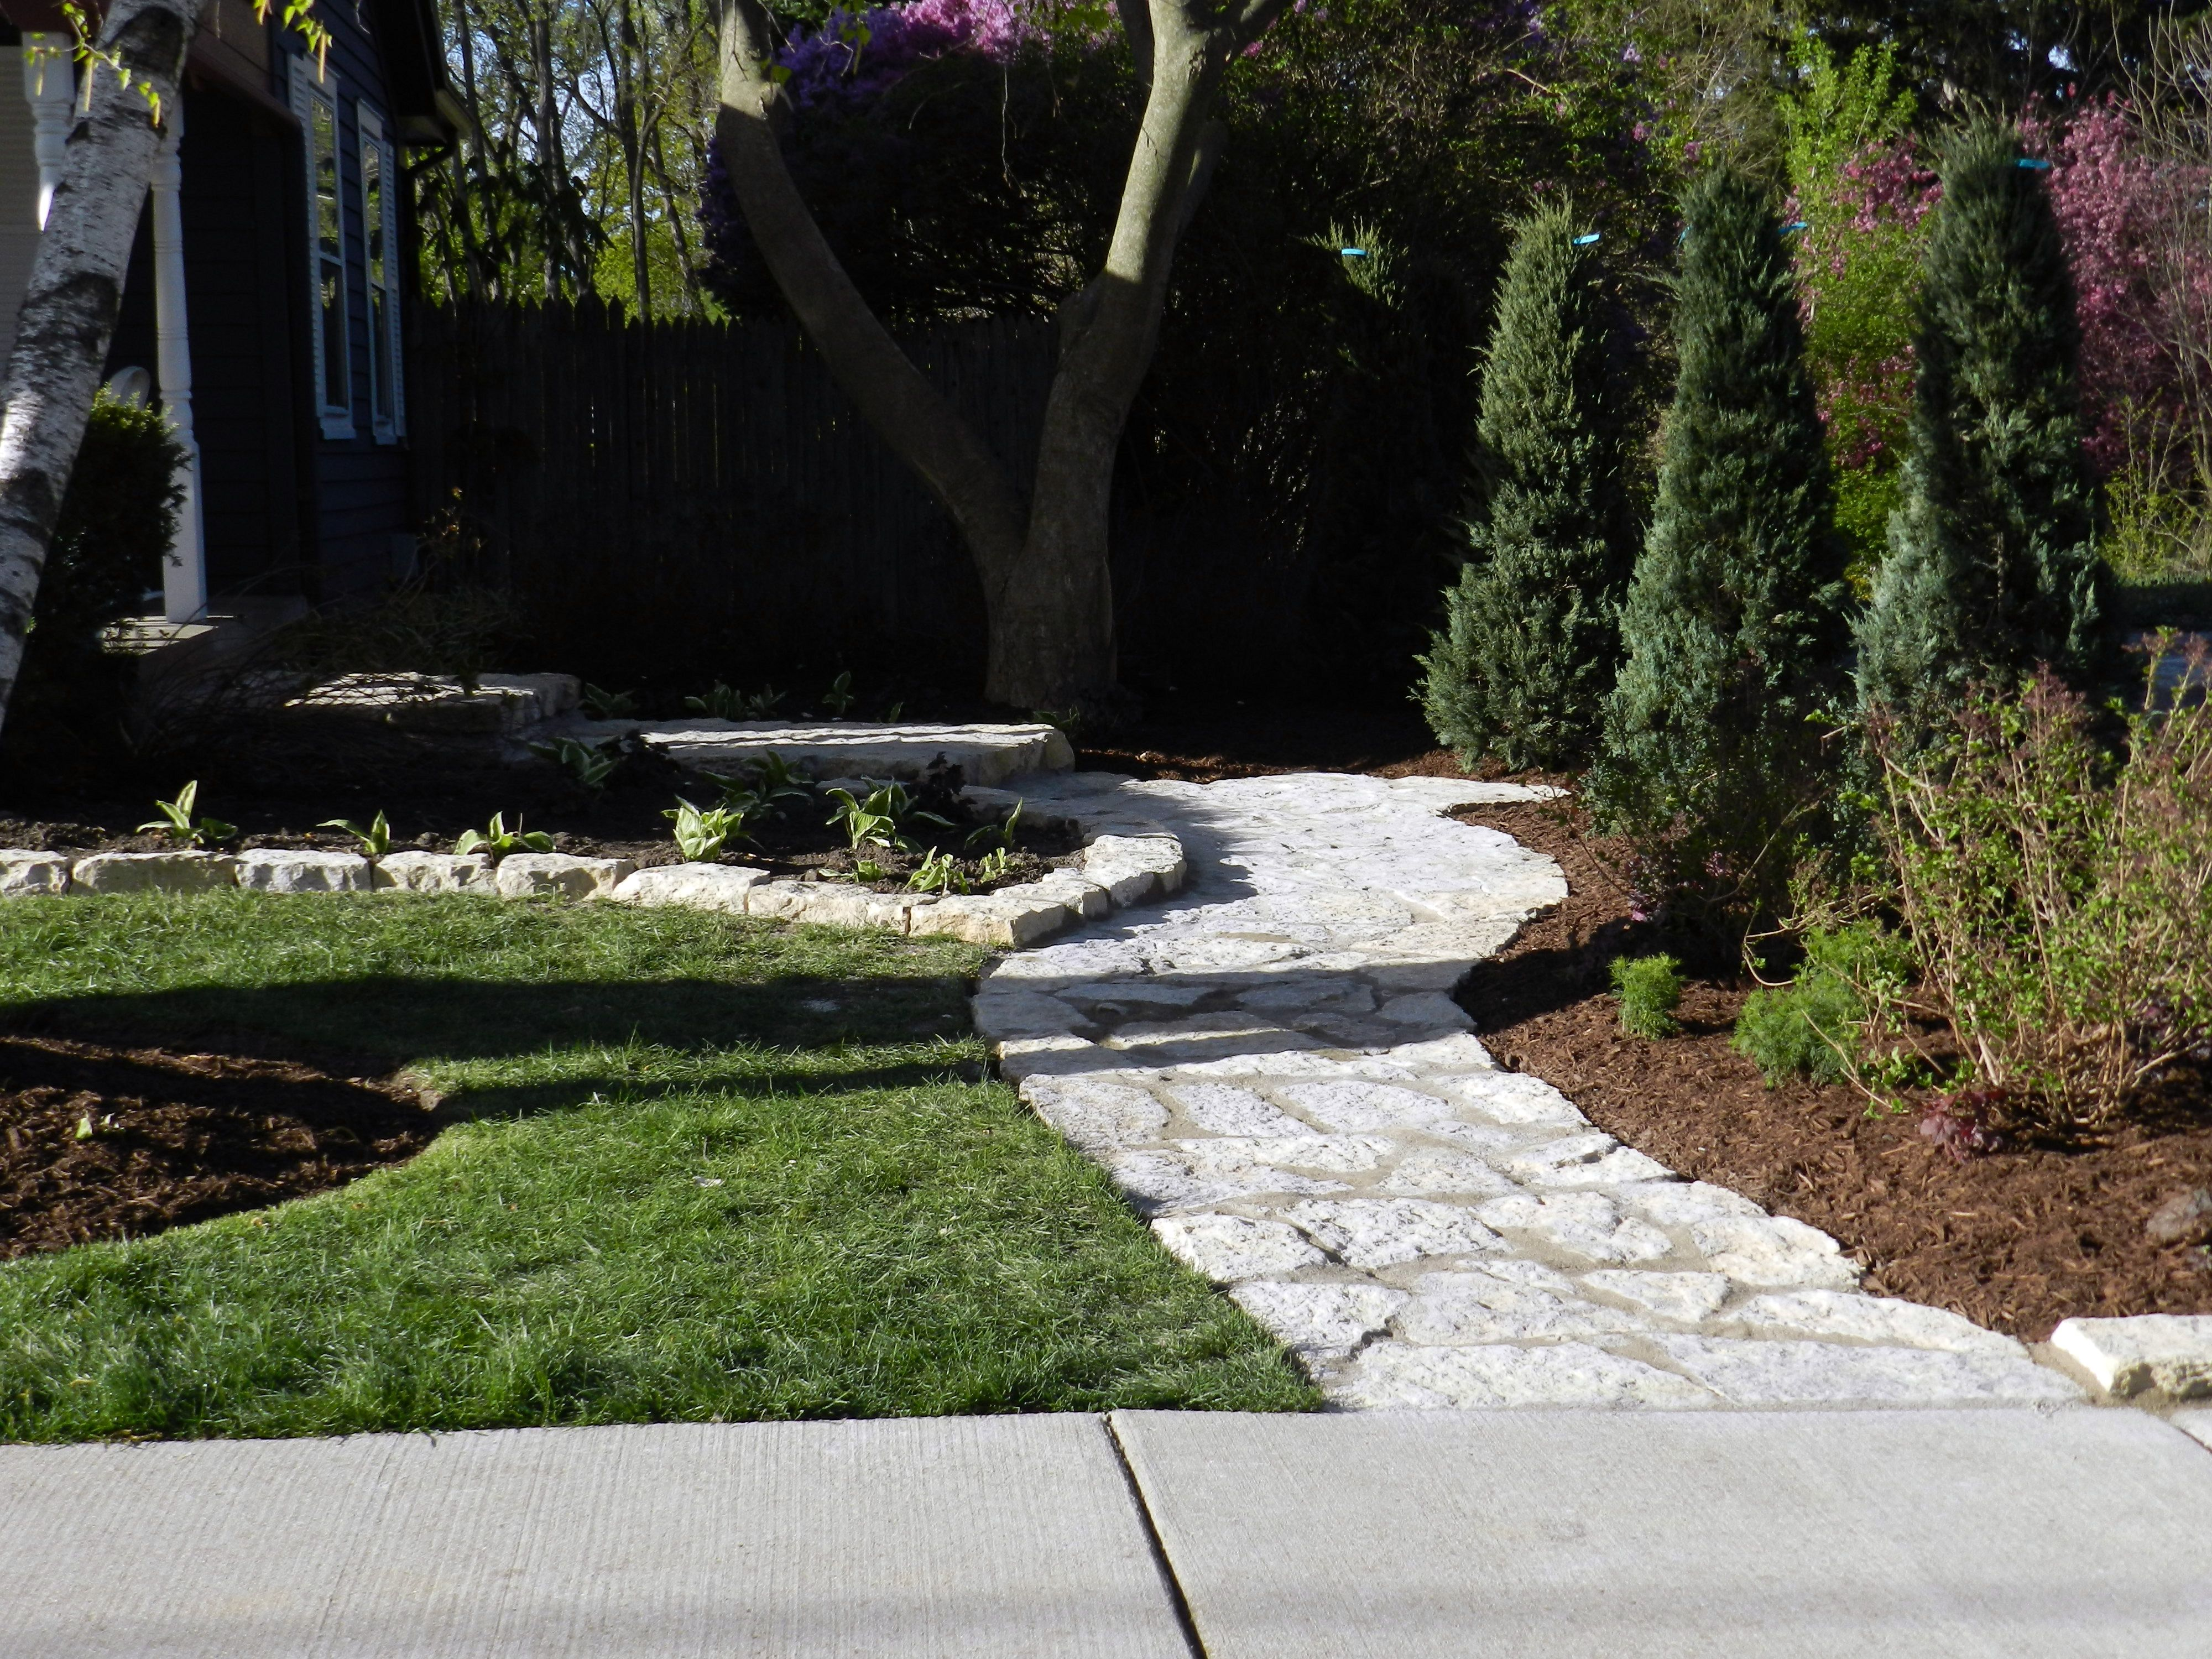 Complete Replanting Of Entire Side With Larger Junipers Small Ground Cover And Mixed Shrubs Call Not Just Grass Lawn Maintenance Flagstone Walkway Hardscape